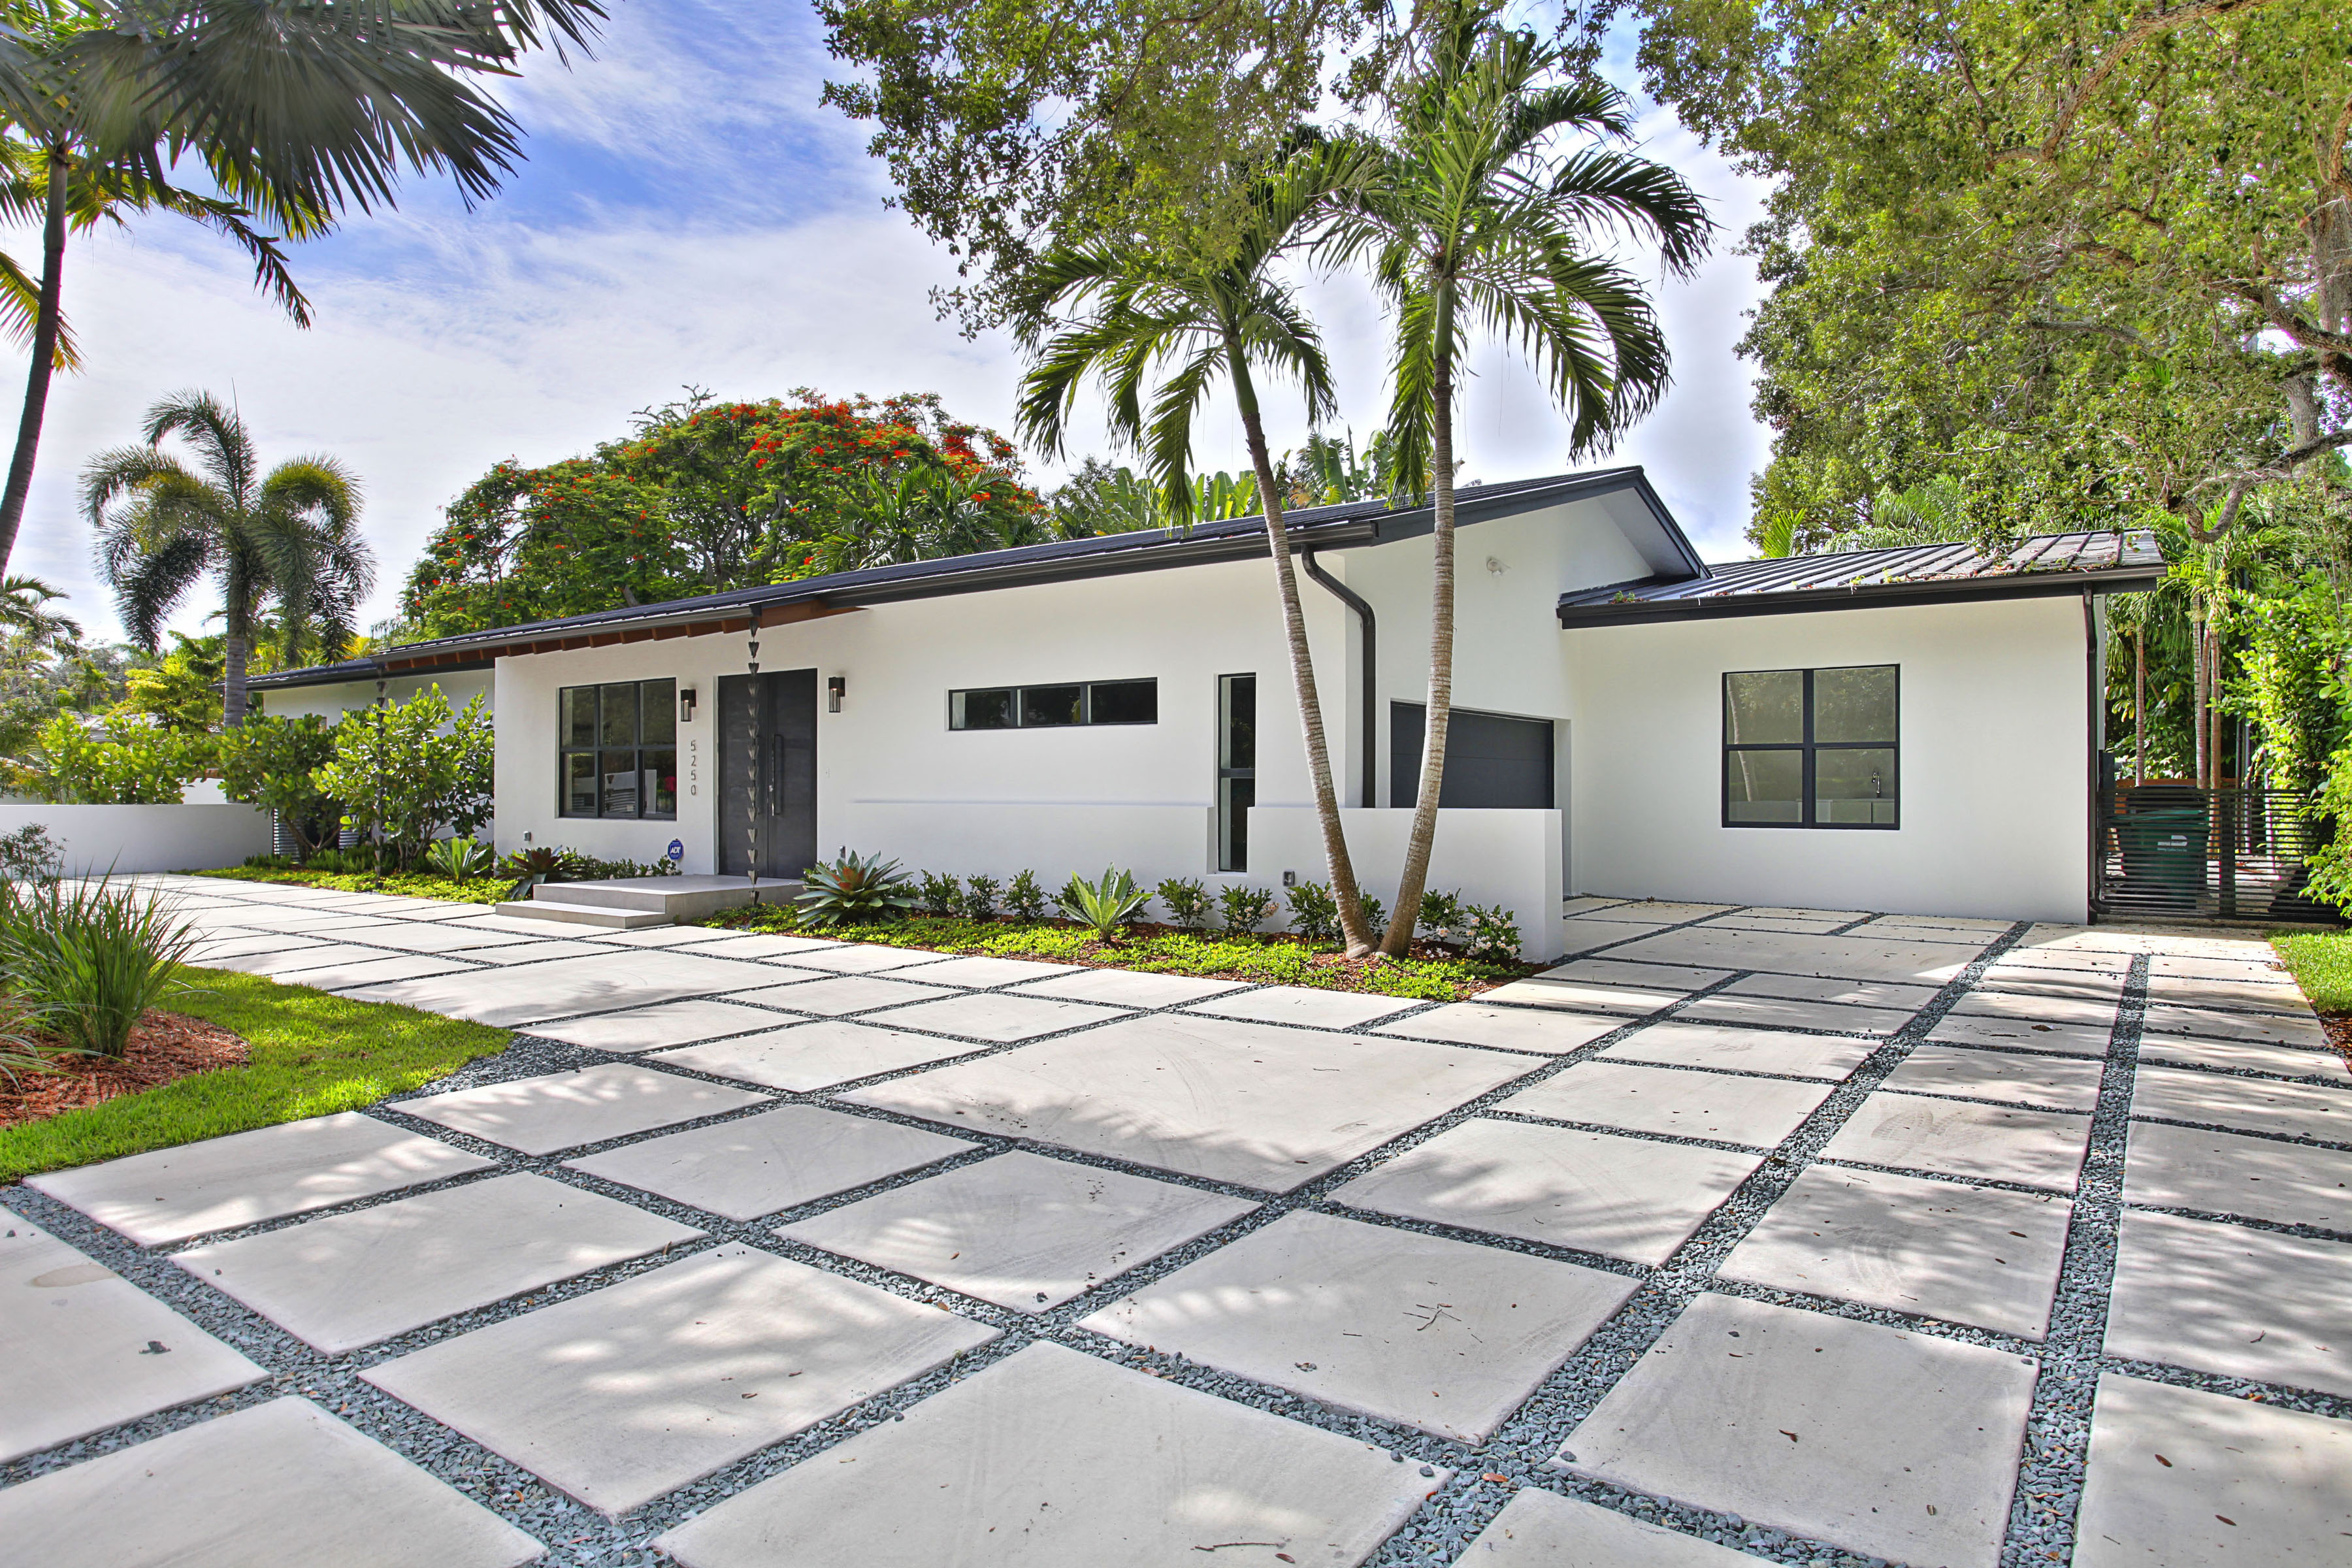 Recently sold by valaree byrne in high pines 5250 sw 76th for Big houses in miami